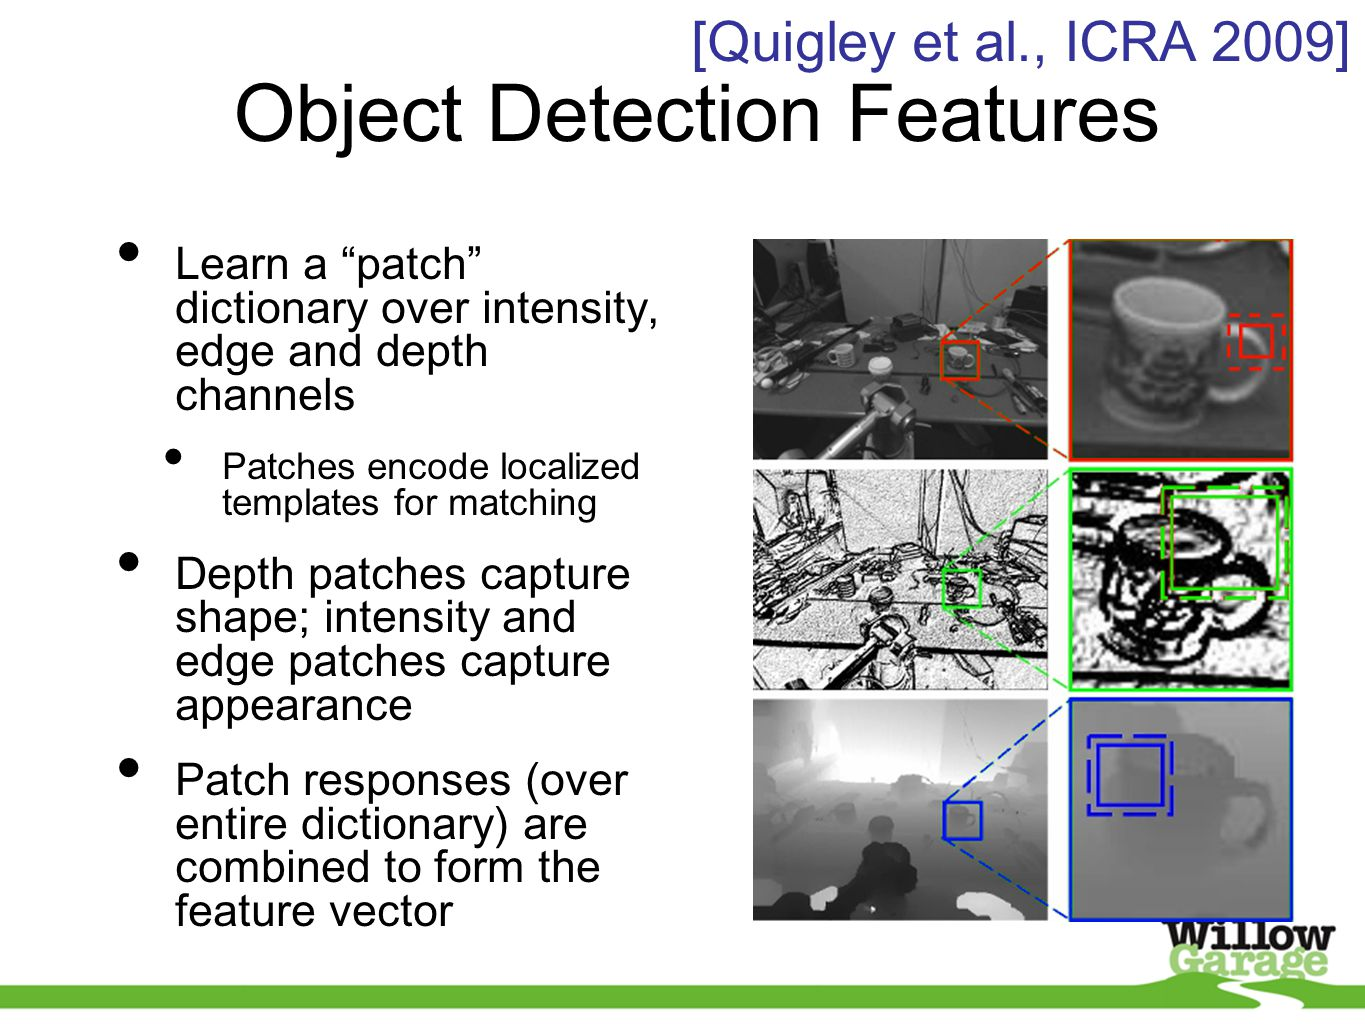 Object Detection Features Learn a patch dictionary over intensity, edge and depth channels Patches encode localized templates for matching Depth patches capture shape; intensity and edge patches capture appearance Patch responses (over entire dictionary) are combined to form the feature vector [Quigley et al., ICRA 2009]